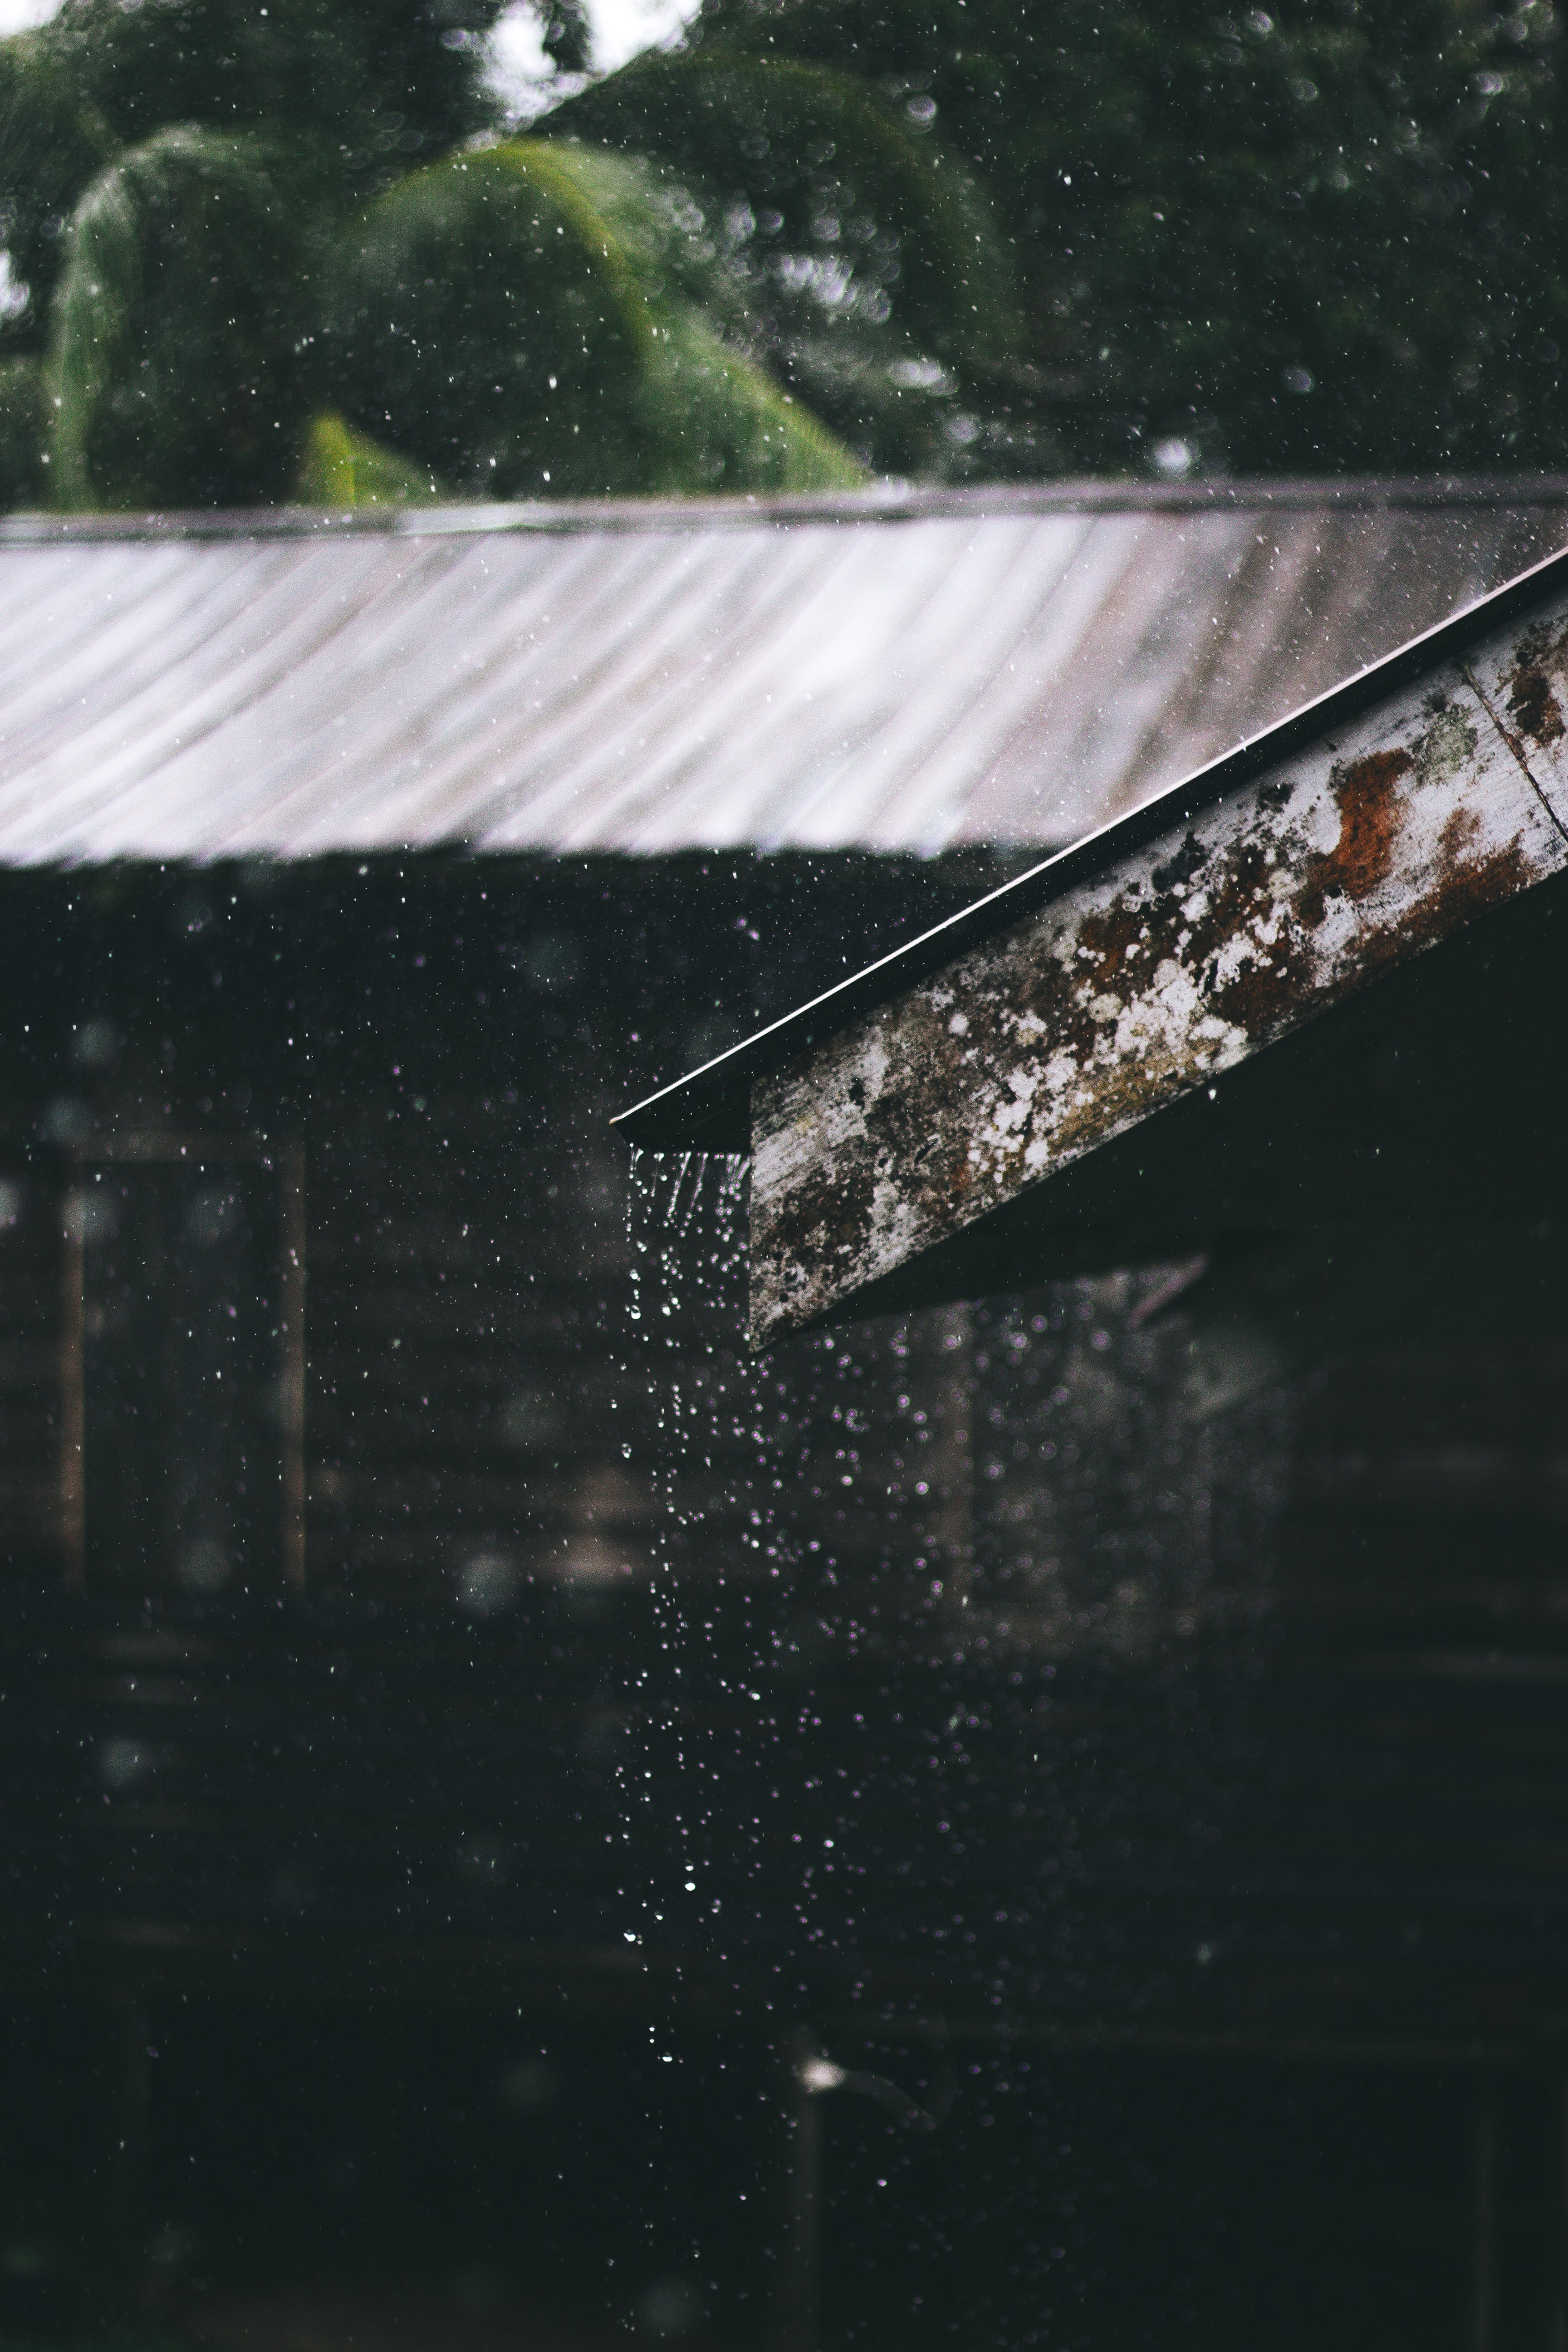 Selective Focus Photography of Corrugated Metal Sheet of House during Rainy Daytime